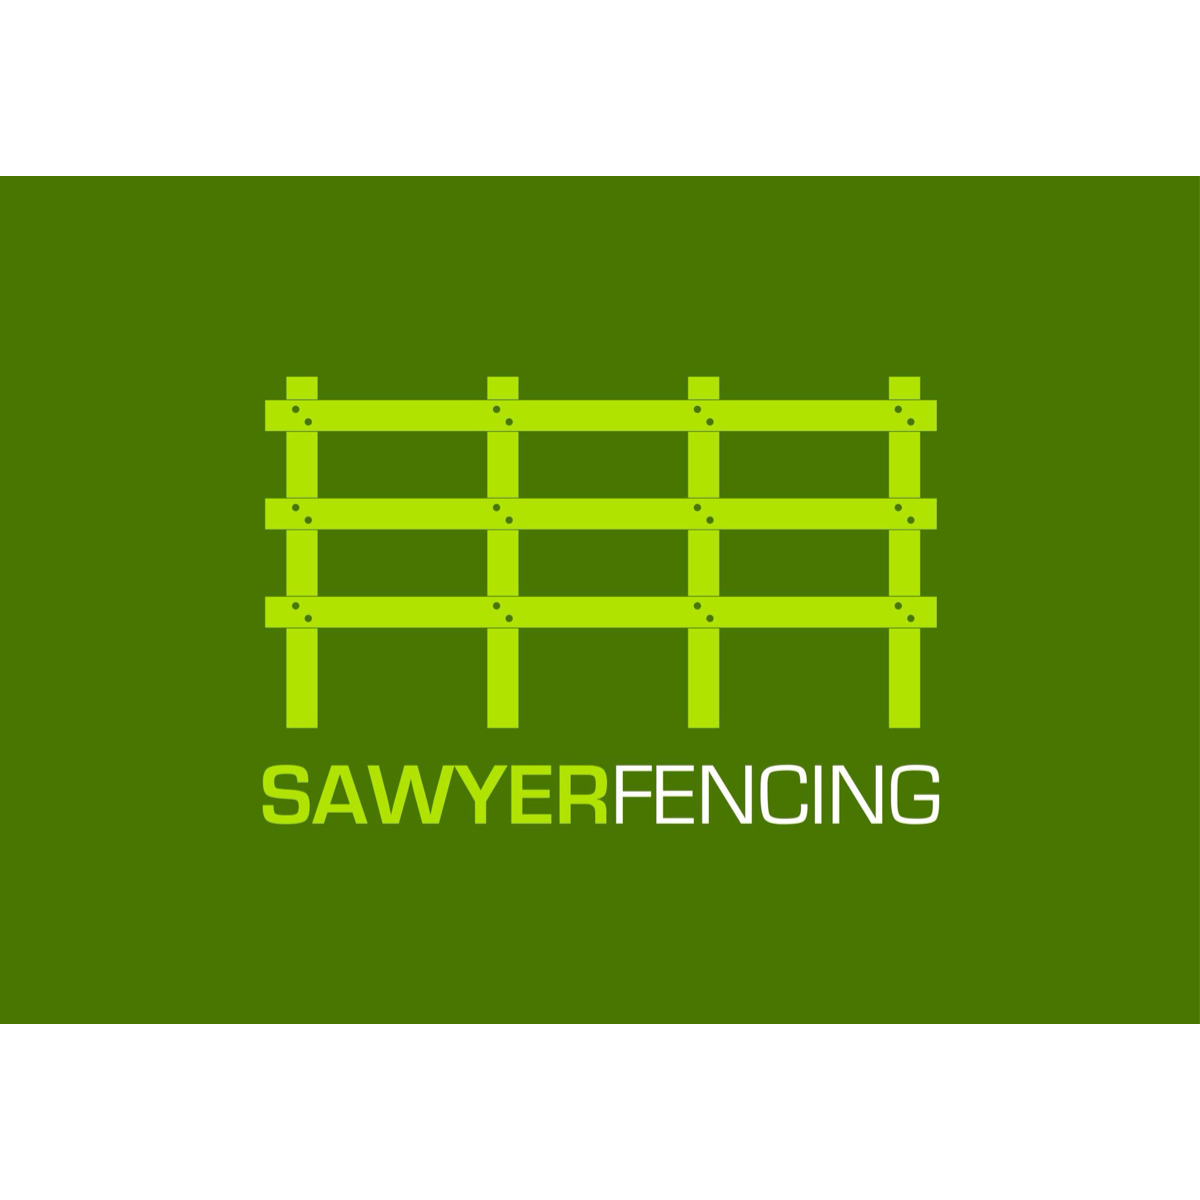 Sawyer Fencing - Sawyer fencing are based near Chester, in Cheshire and specialise in Agricultural, Equestrian and Domestic fencing.Call Simon on 07510918195 / 01829782209